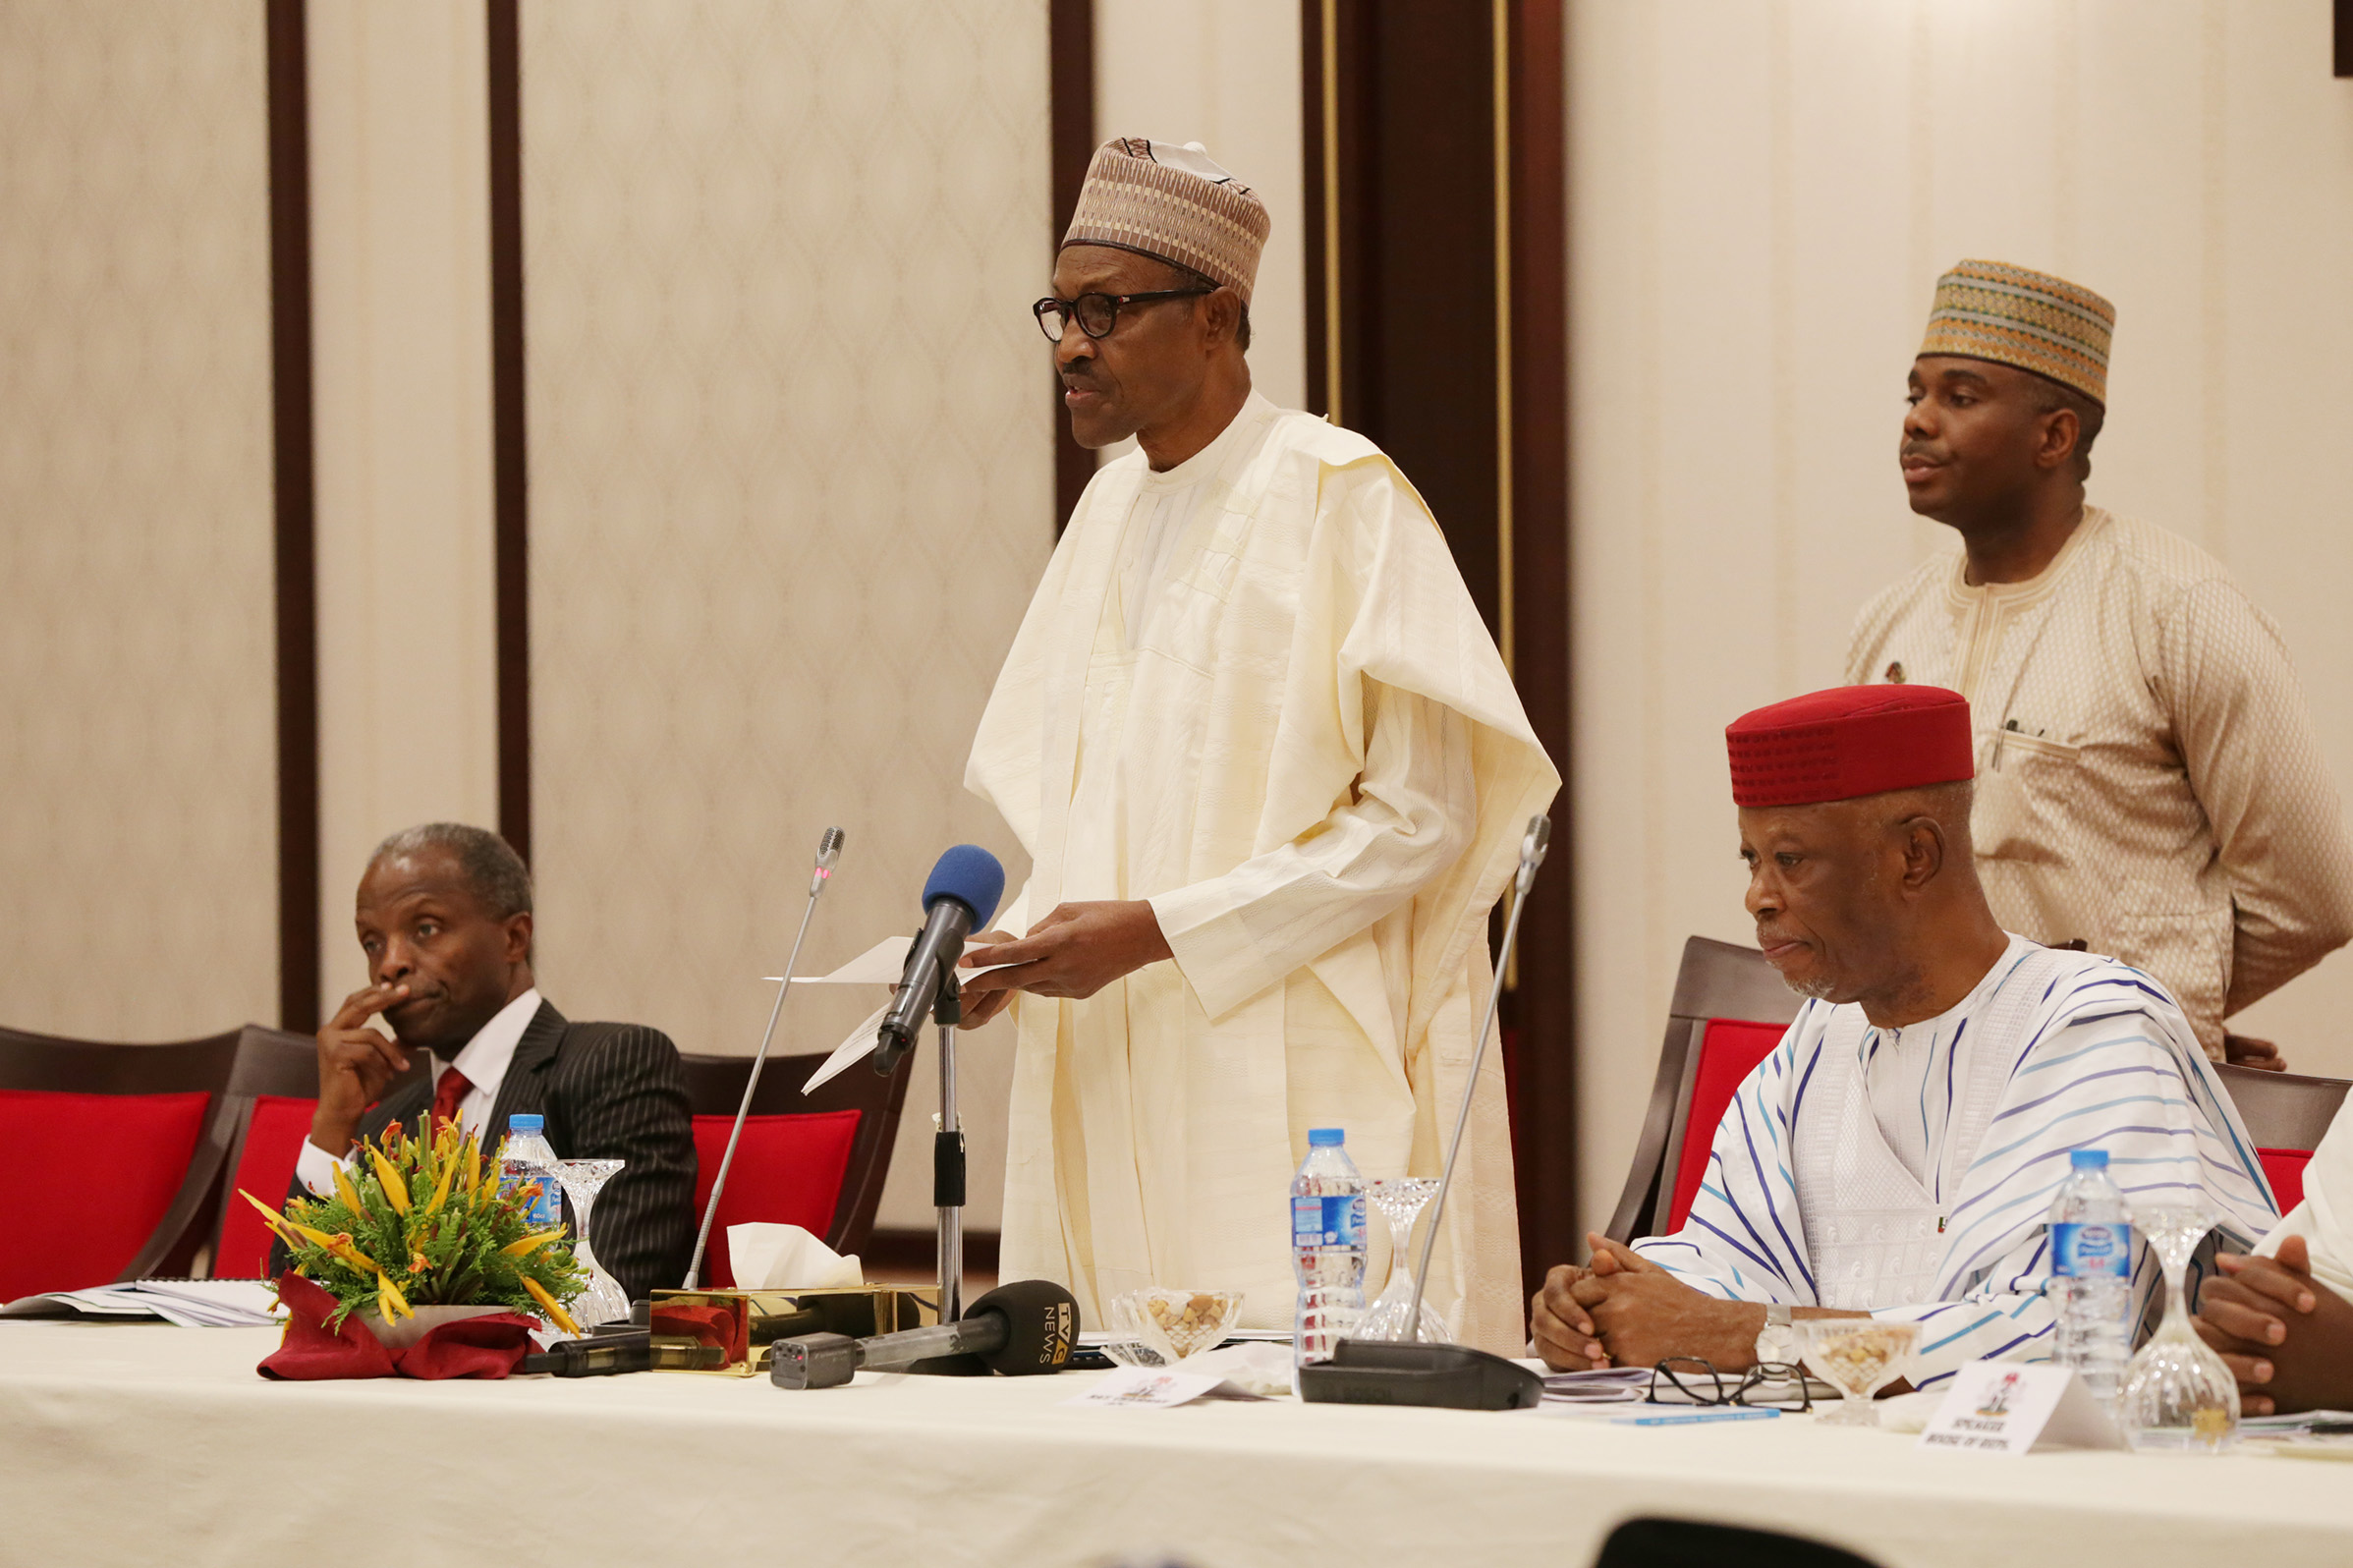 PRESIDENT BUHARI CHAIRS 4TH NAT APC CAUCUS MEETING. President Muhammadu Buhari (M) flanked by the Vice President Yemi Osinbajo and Naional Chairman Chef John Odigie Oyegun during the Party' 4th National Caucus Meeting held Monday night at the Presidential Villa Abuja. PHOTO; SUNDAY AGHAEZE. FEB 26 2018